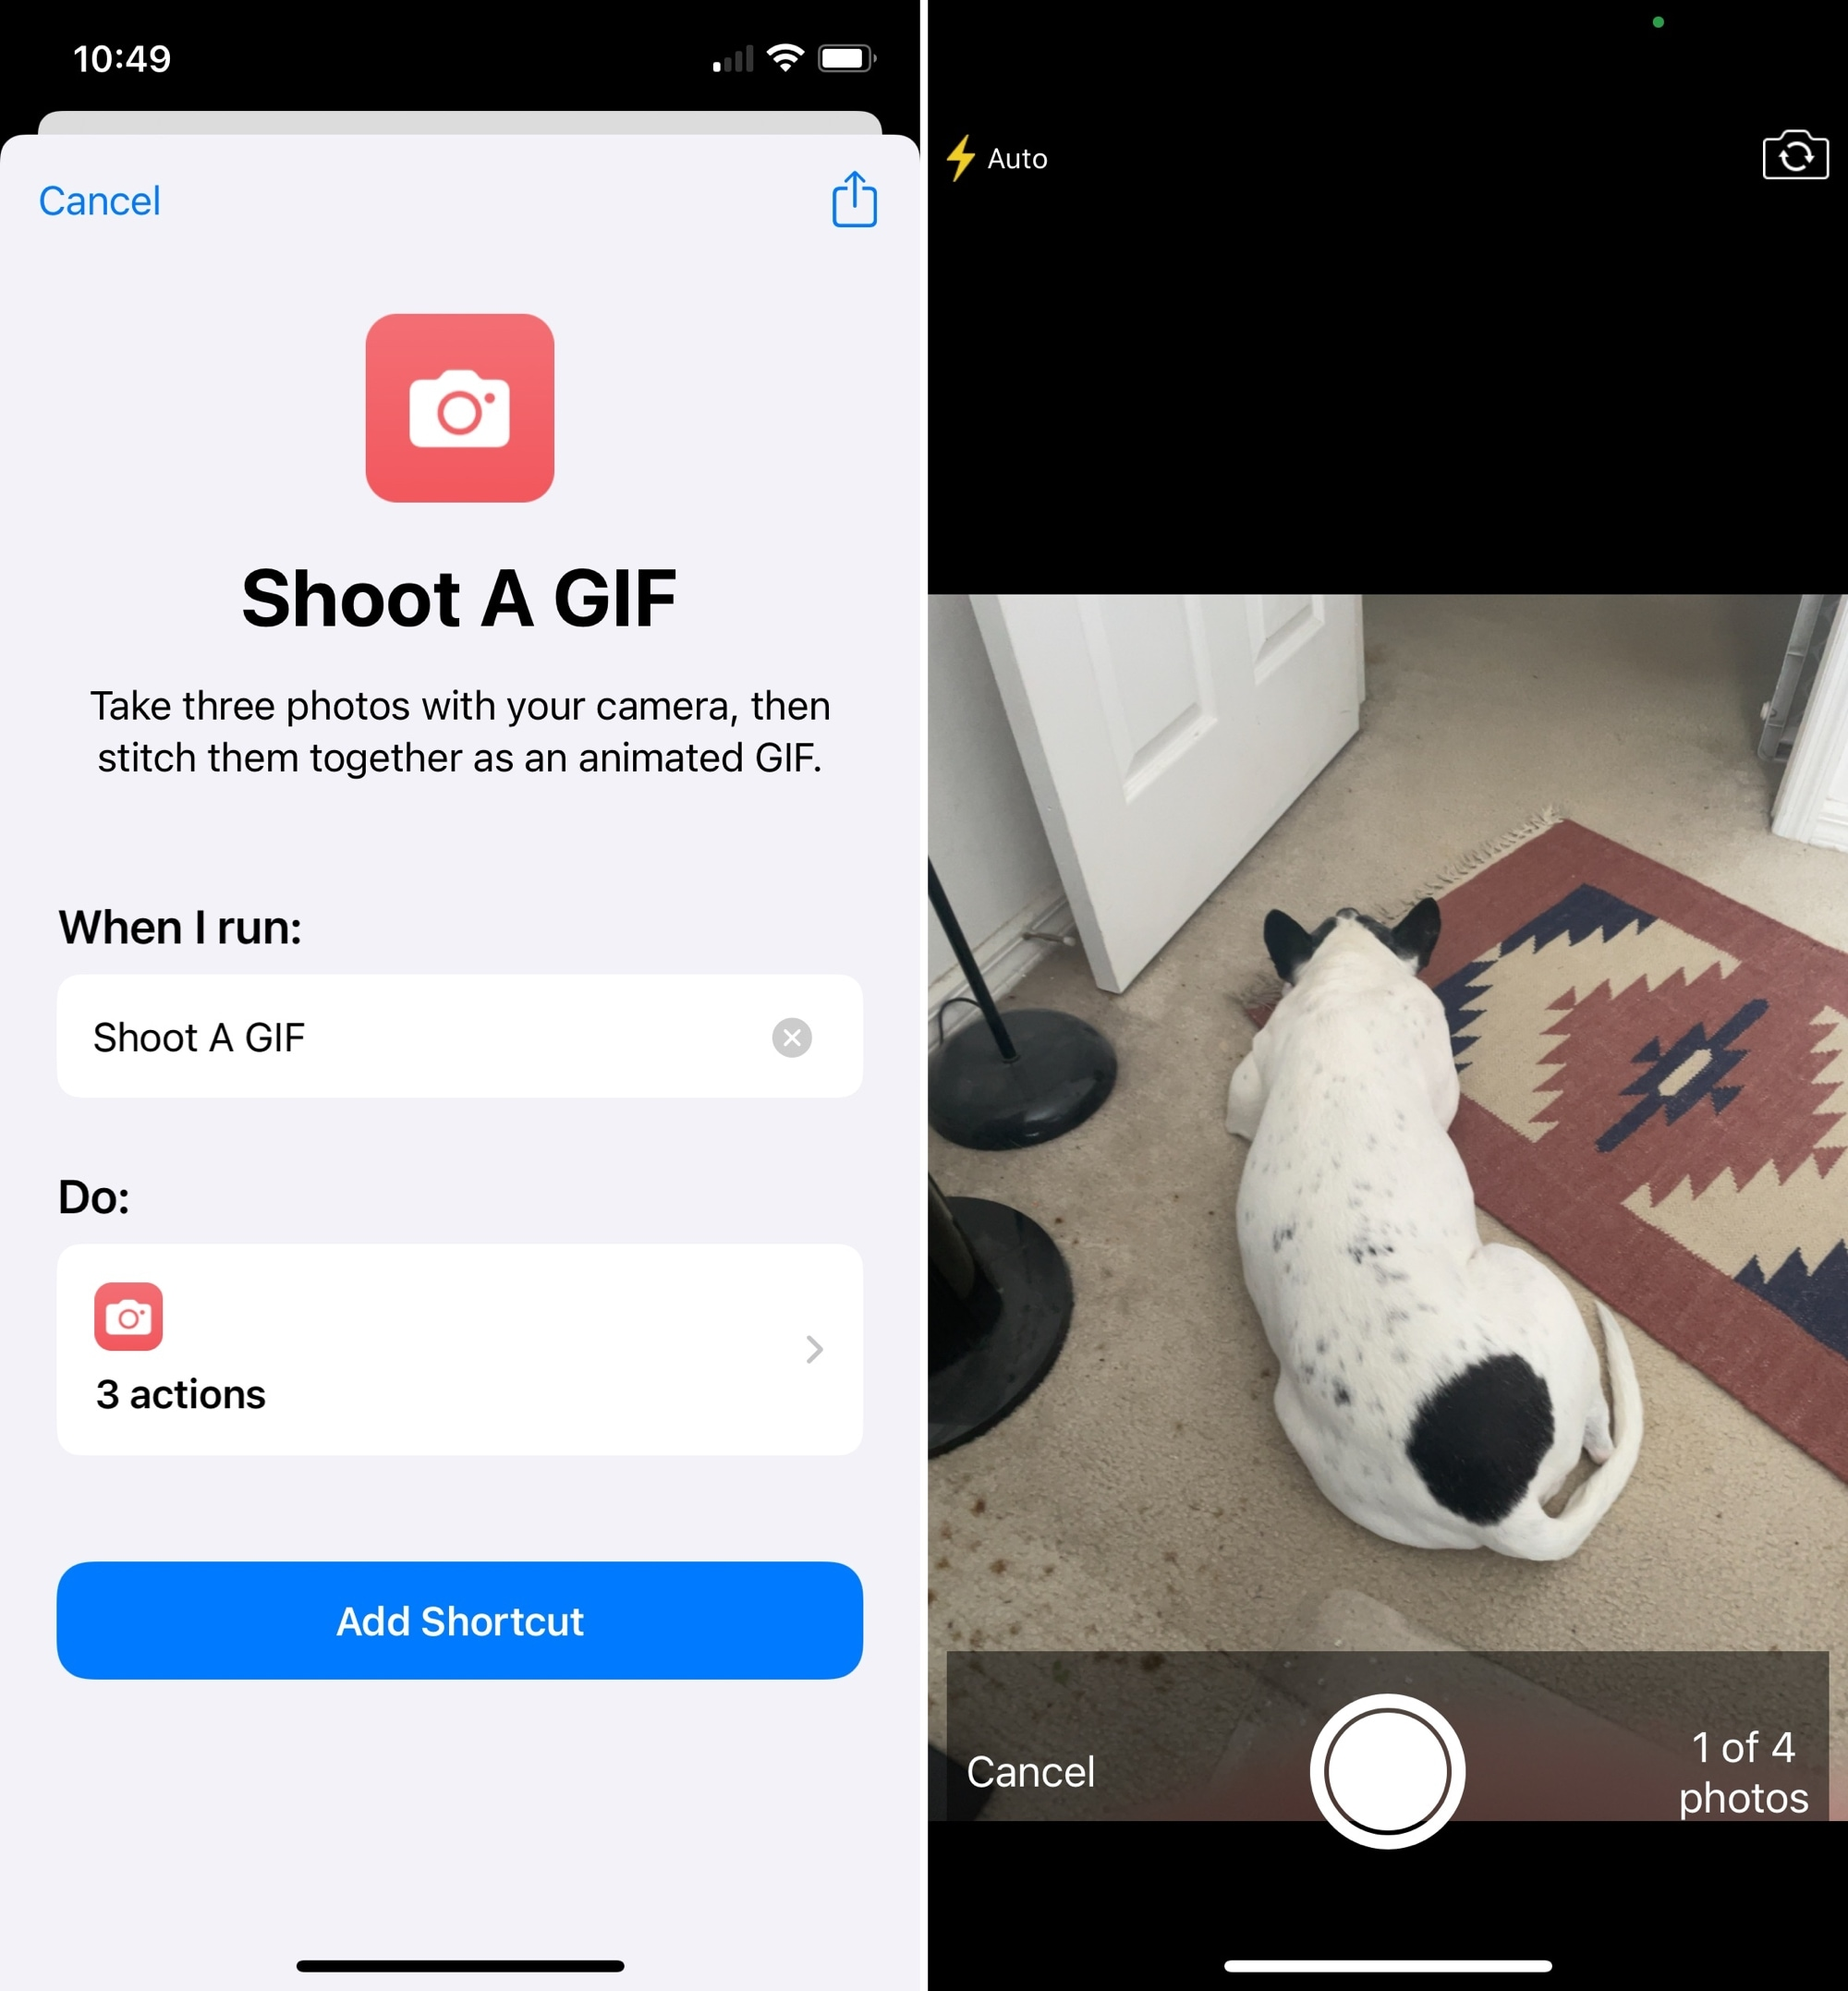 Shoot a GIF in Shortcuts on iPhone